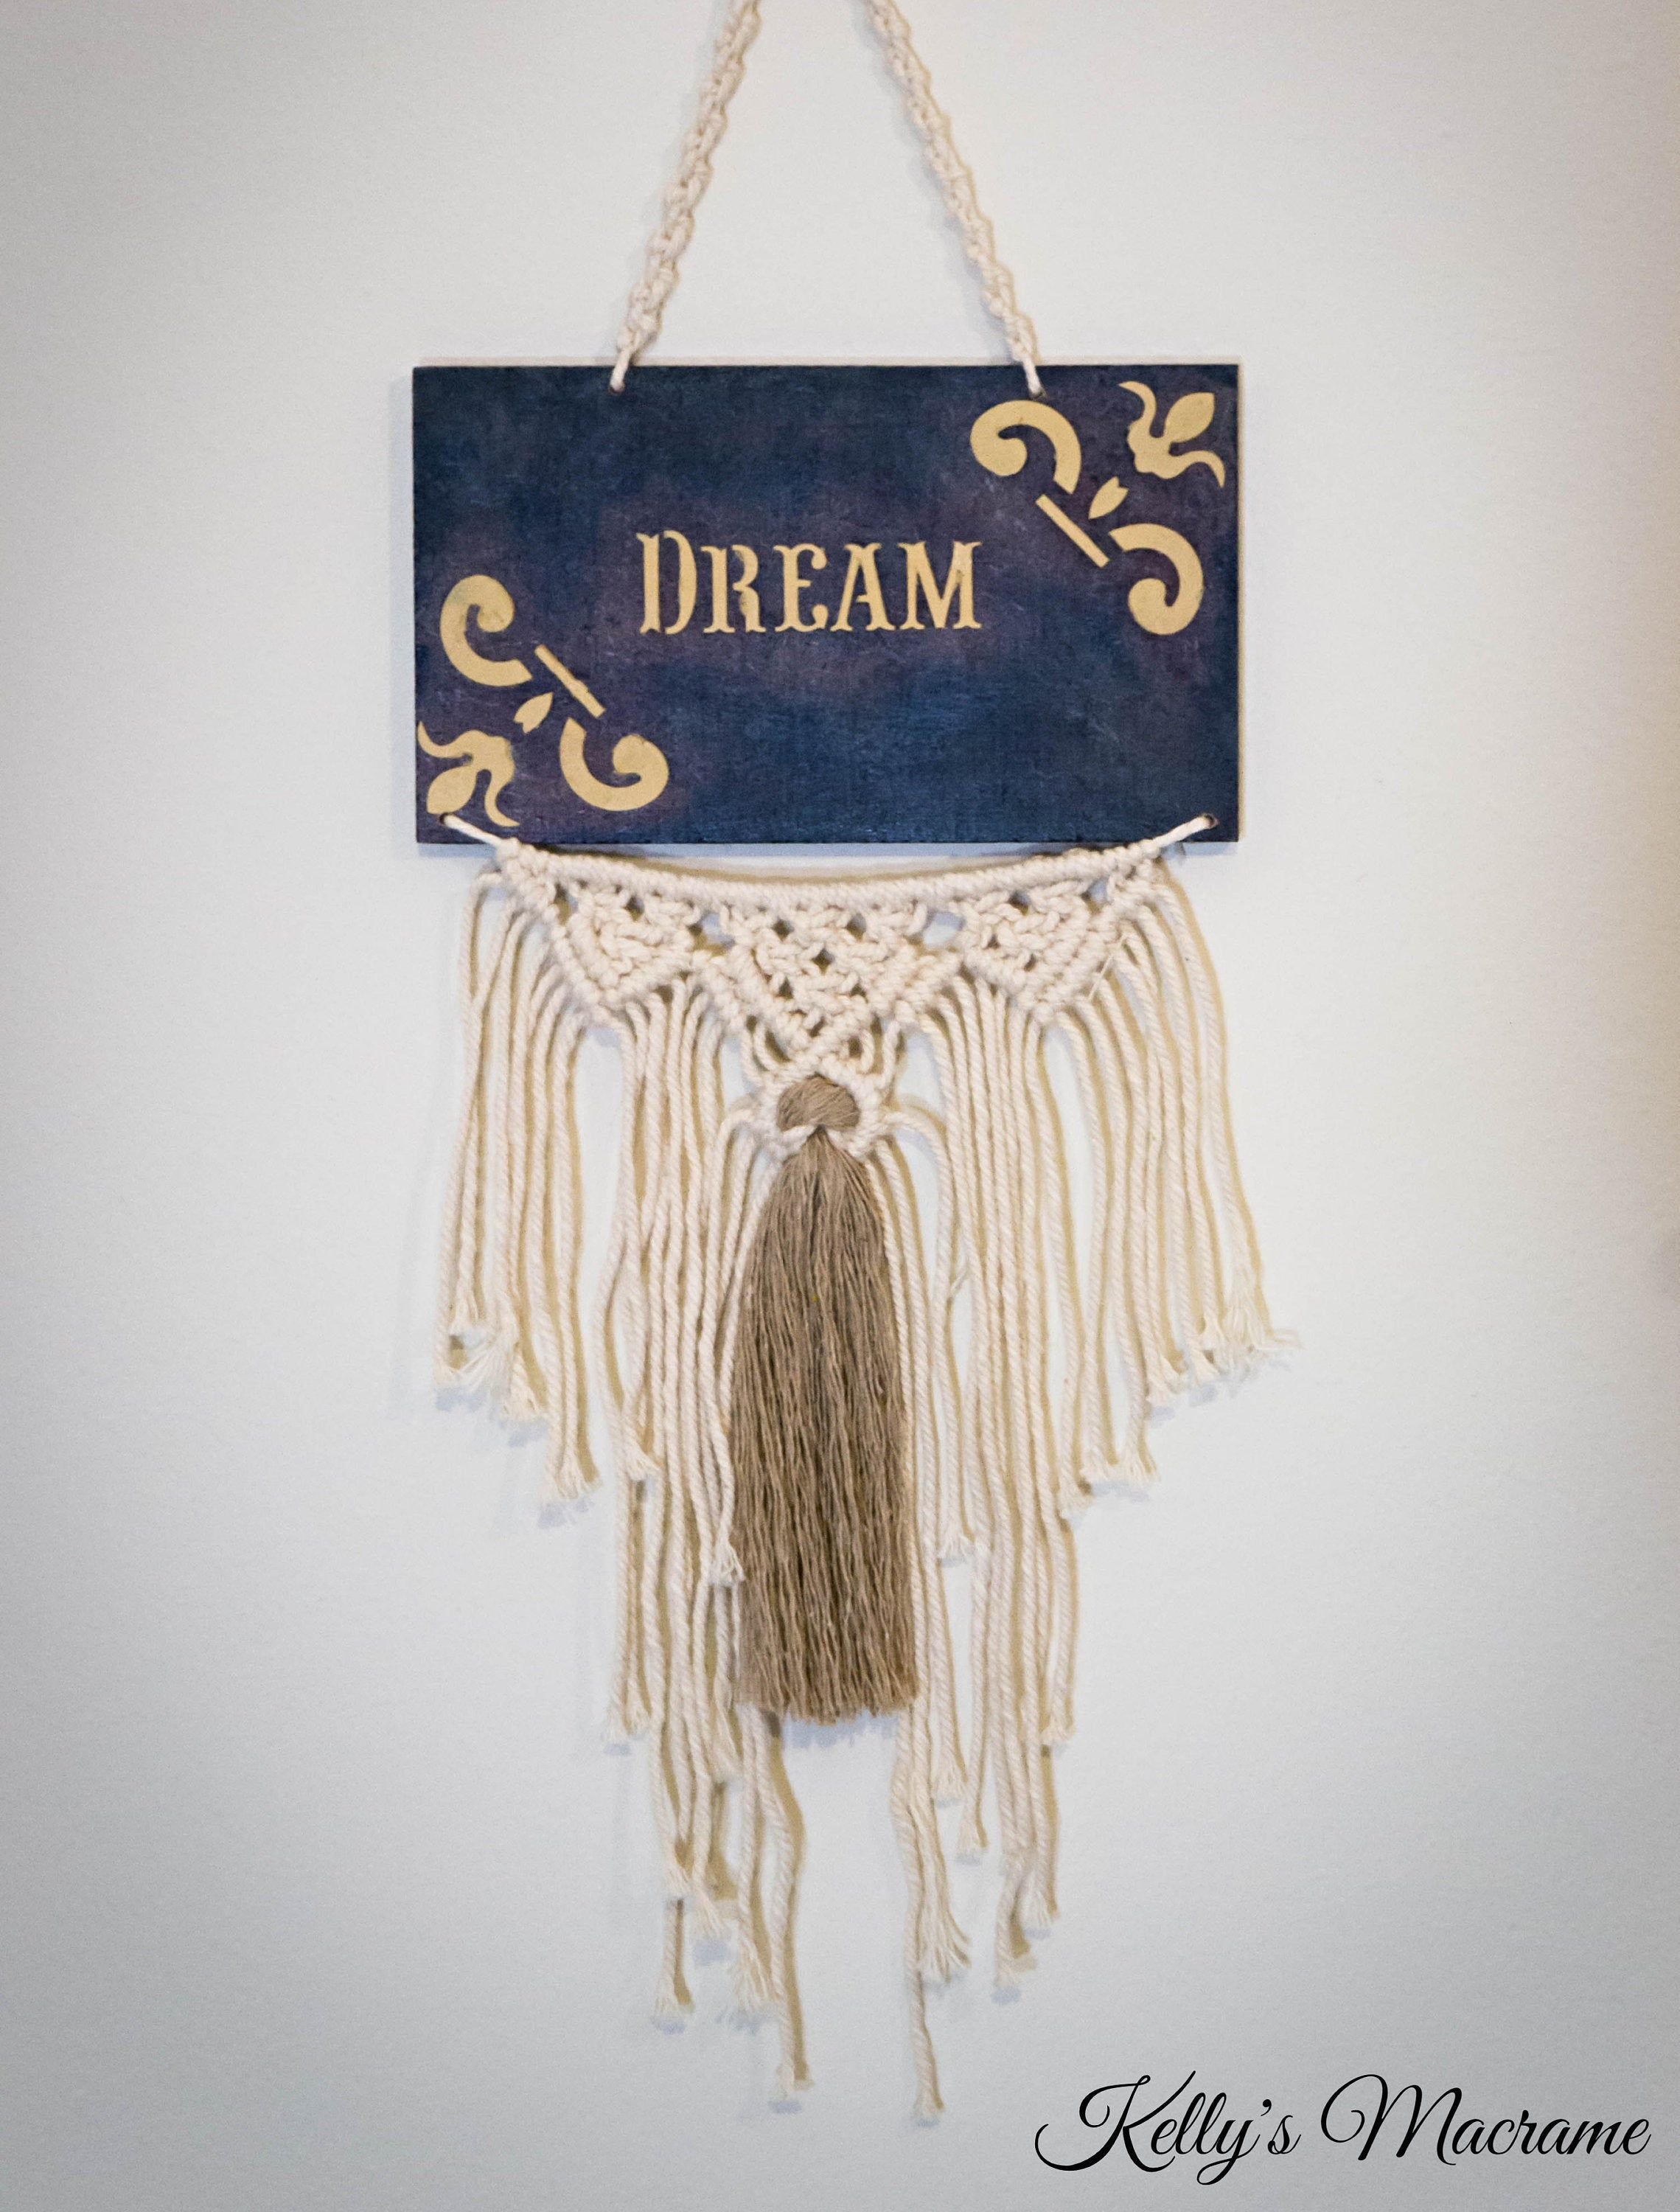 Macrame Wall Hanging Macrame Wall Decor Home Decor Dream Sign